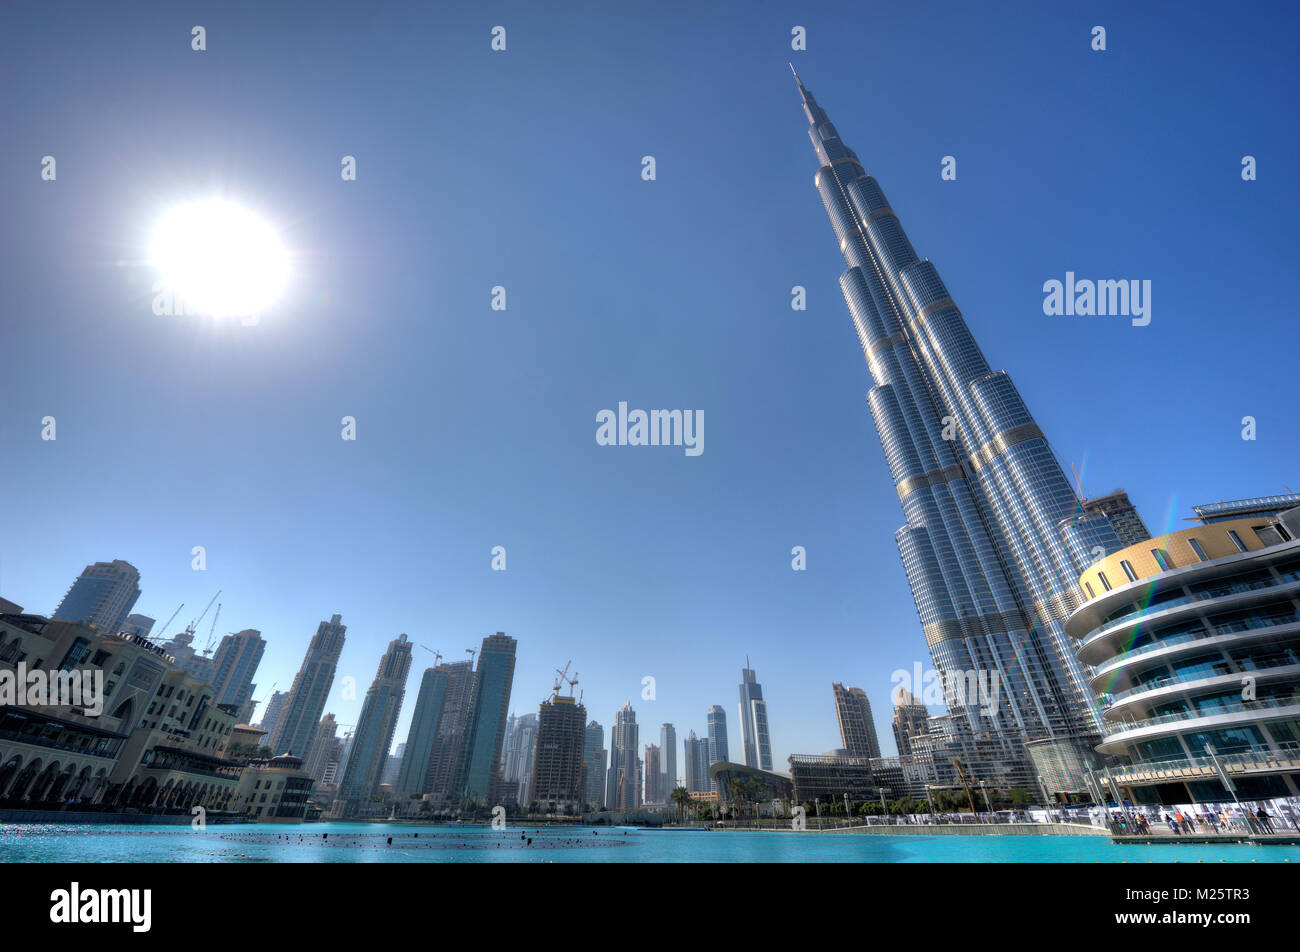 DUBAI, UNITED ARAB EMIRATES - JAN 02, 2018: The Burj Khalifa in the center of Dubai is the tallest building in the - Stock Image